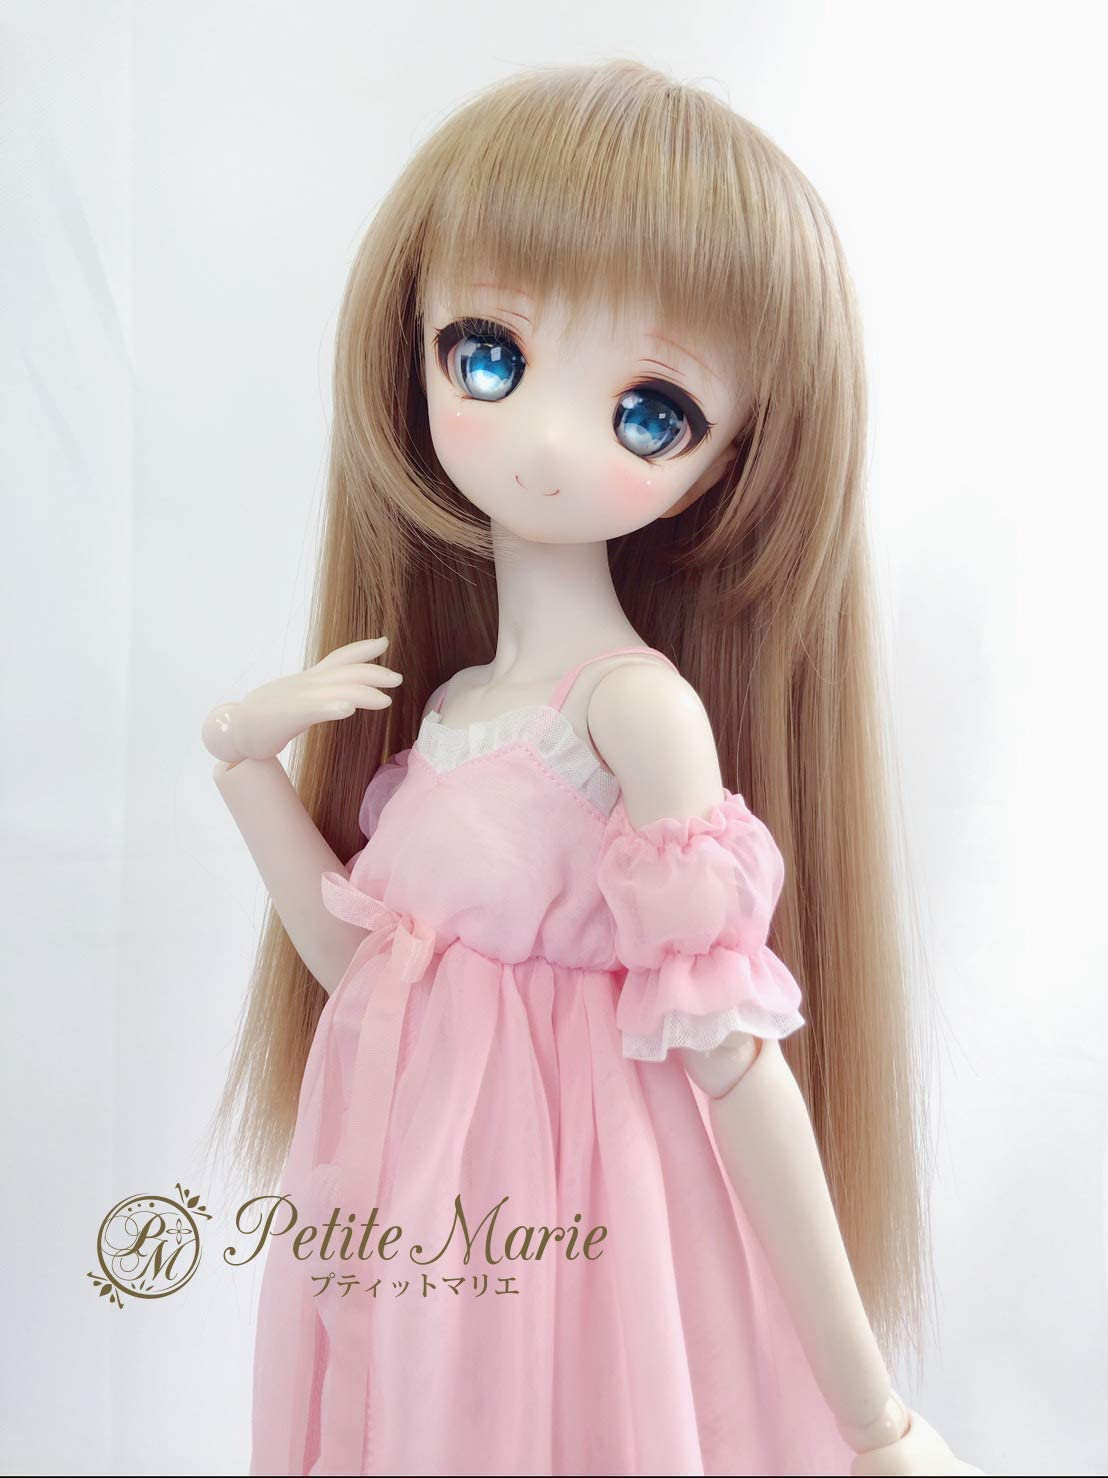 Petite Marie Japan for 1//4 Doll 16 inch 16 40cm SD DD BJD Cute Pink Princess Dress Nightgowns with Balloon Sleeve Strap Dress Clothes Only